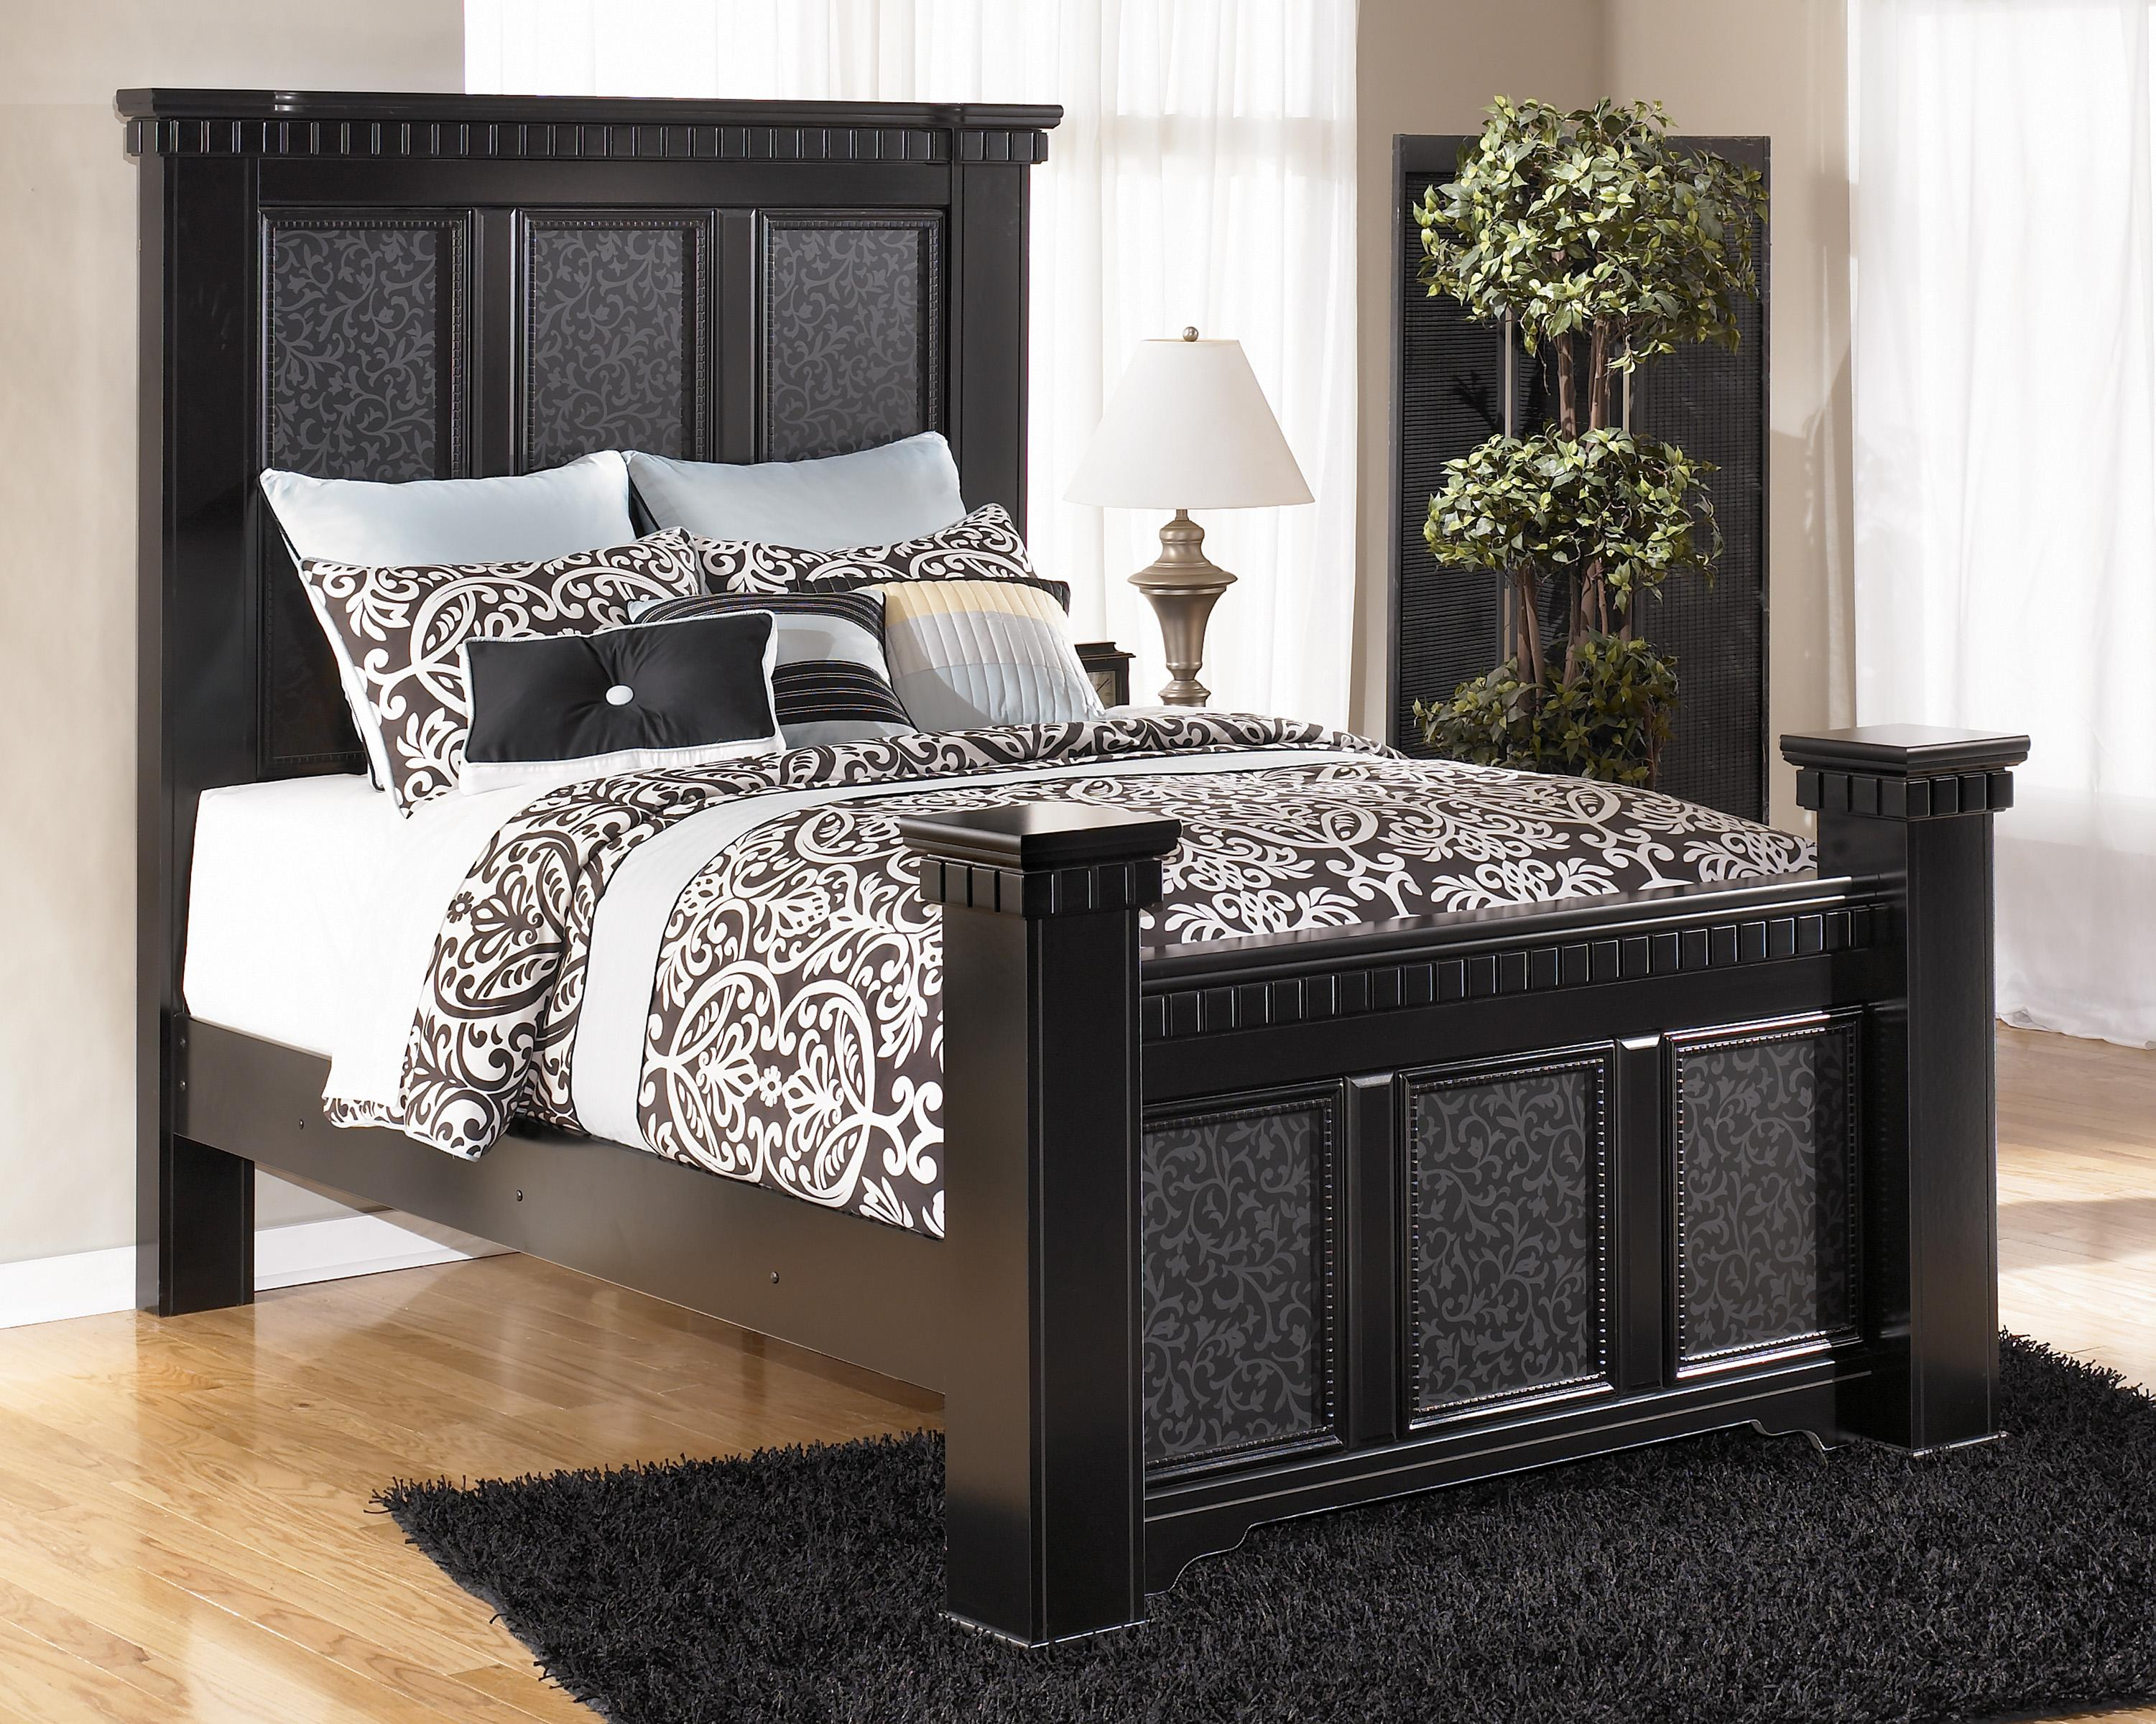 Signature Design by Ashley Cavallino Queen Mansion Poster Bed - Item Number: B291-157+164+98